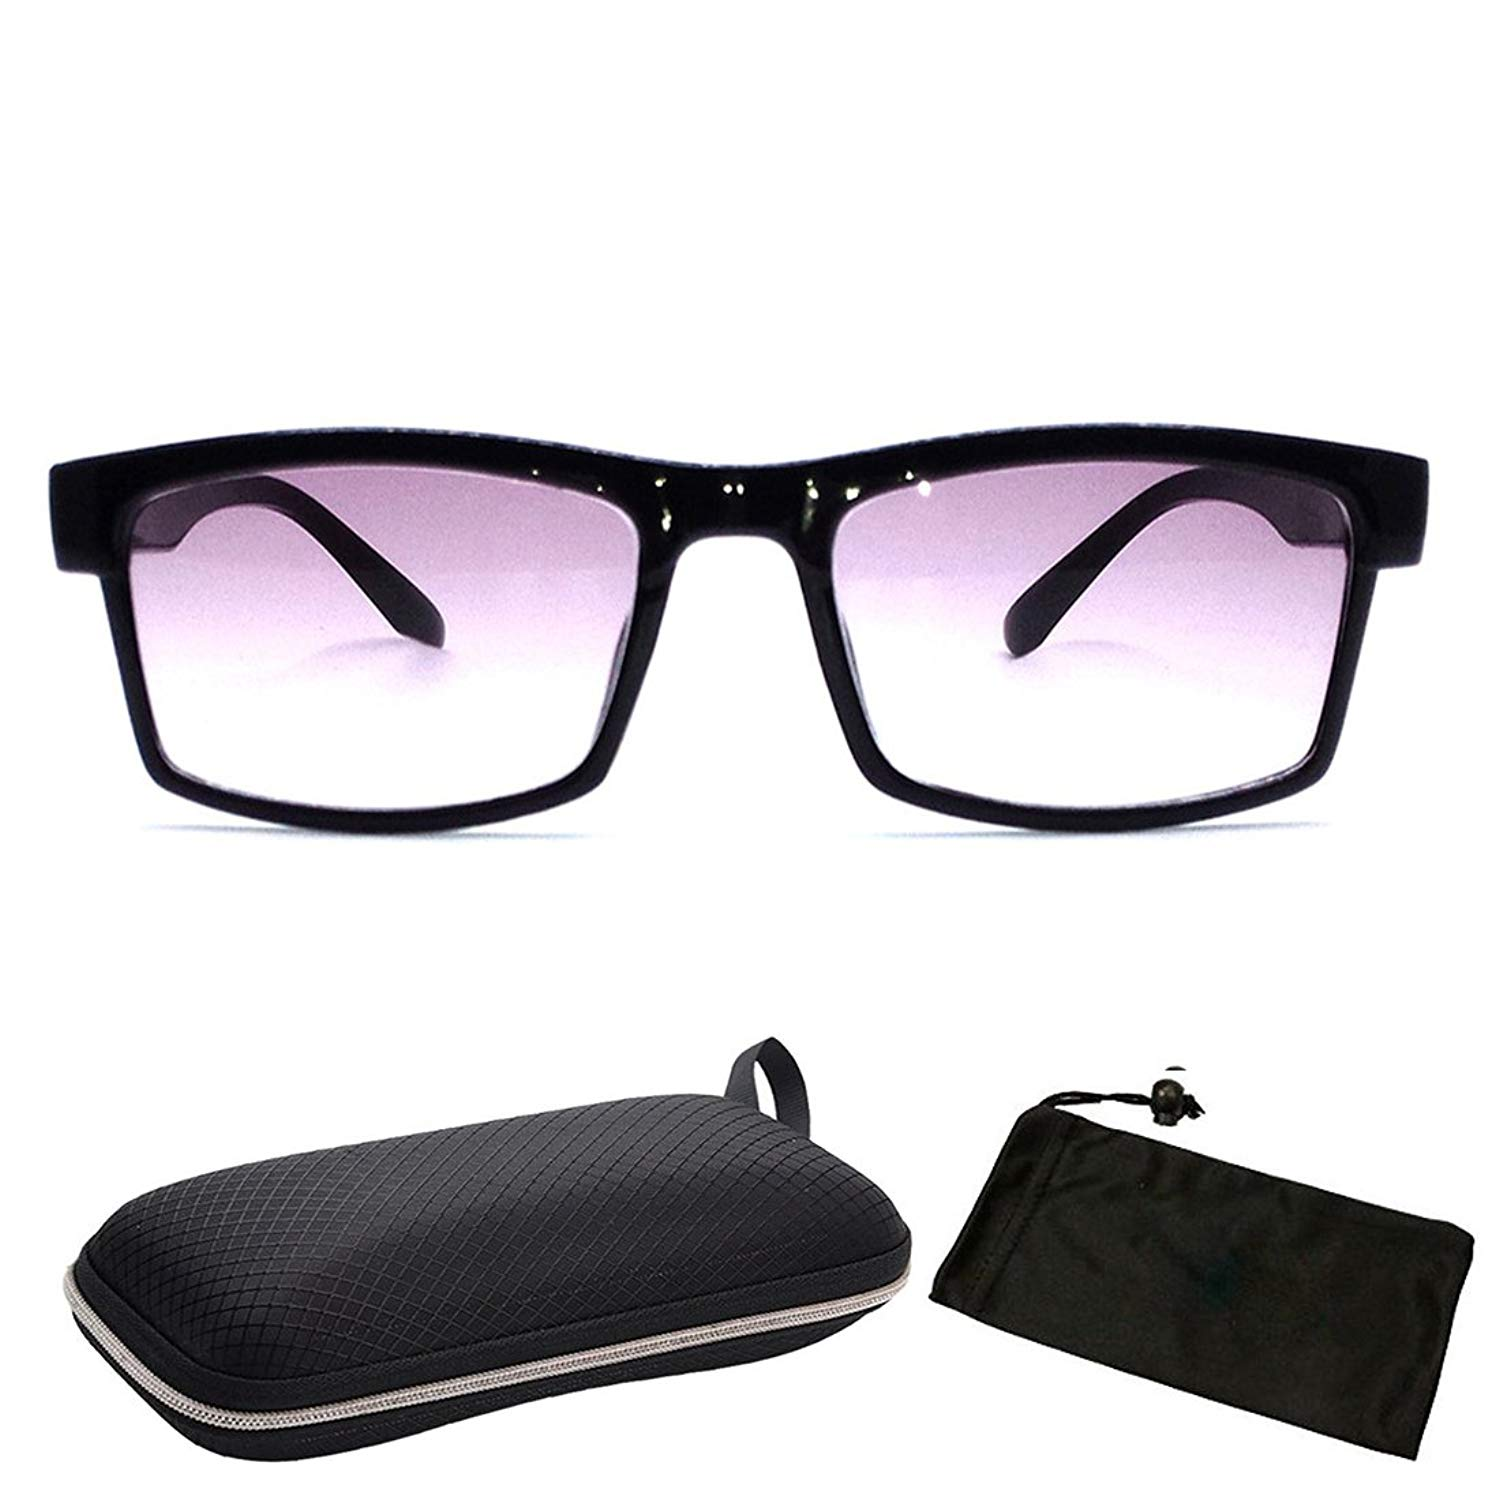 Unisex Men & Women Rectangular Square Shape Bifocal Sun Reader Sunglasses For Outdoor and Indoor Usage INCLUDED FREE: Hard Case + Cleaning Cloth (Strength : +2.50)